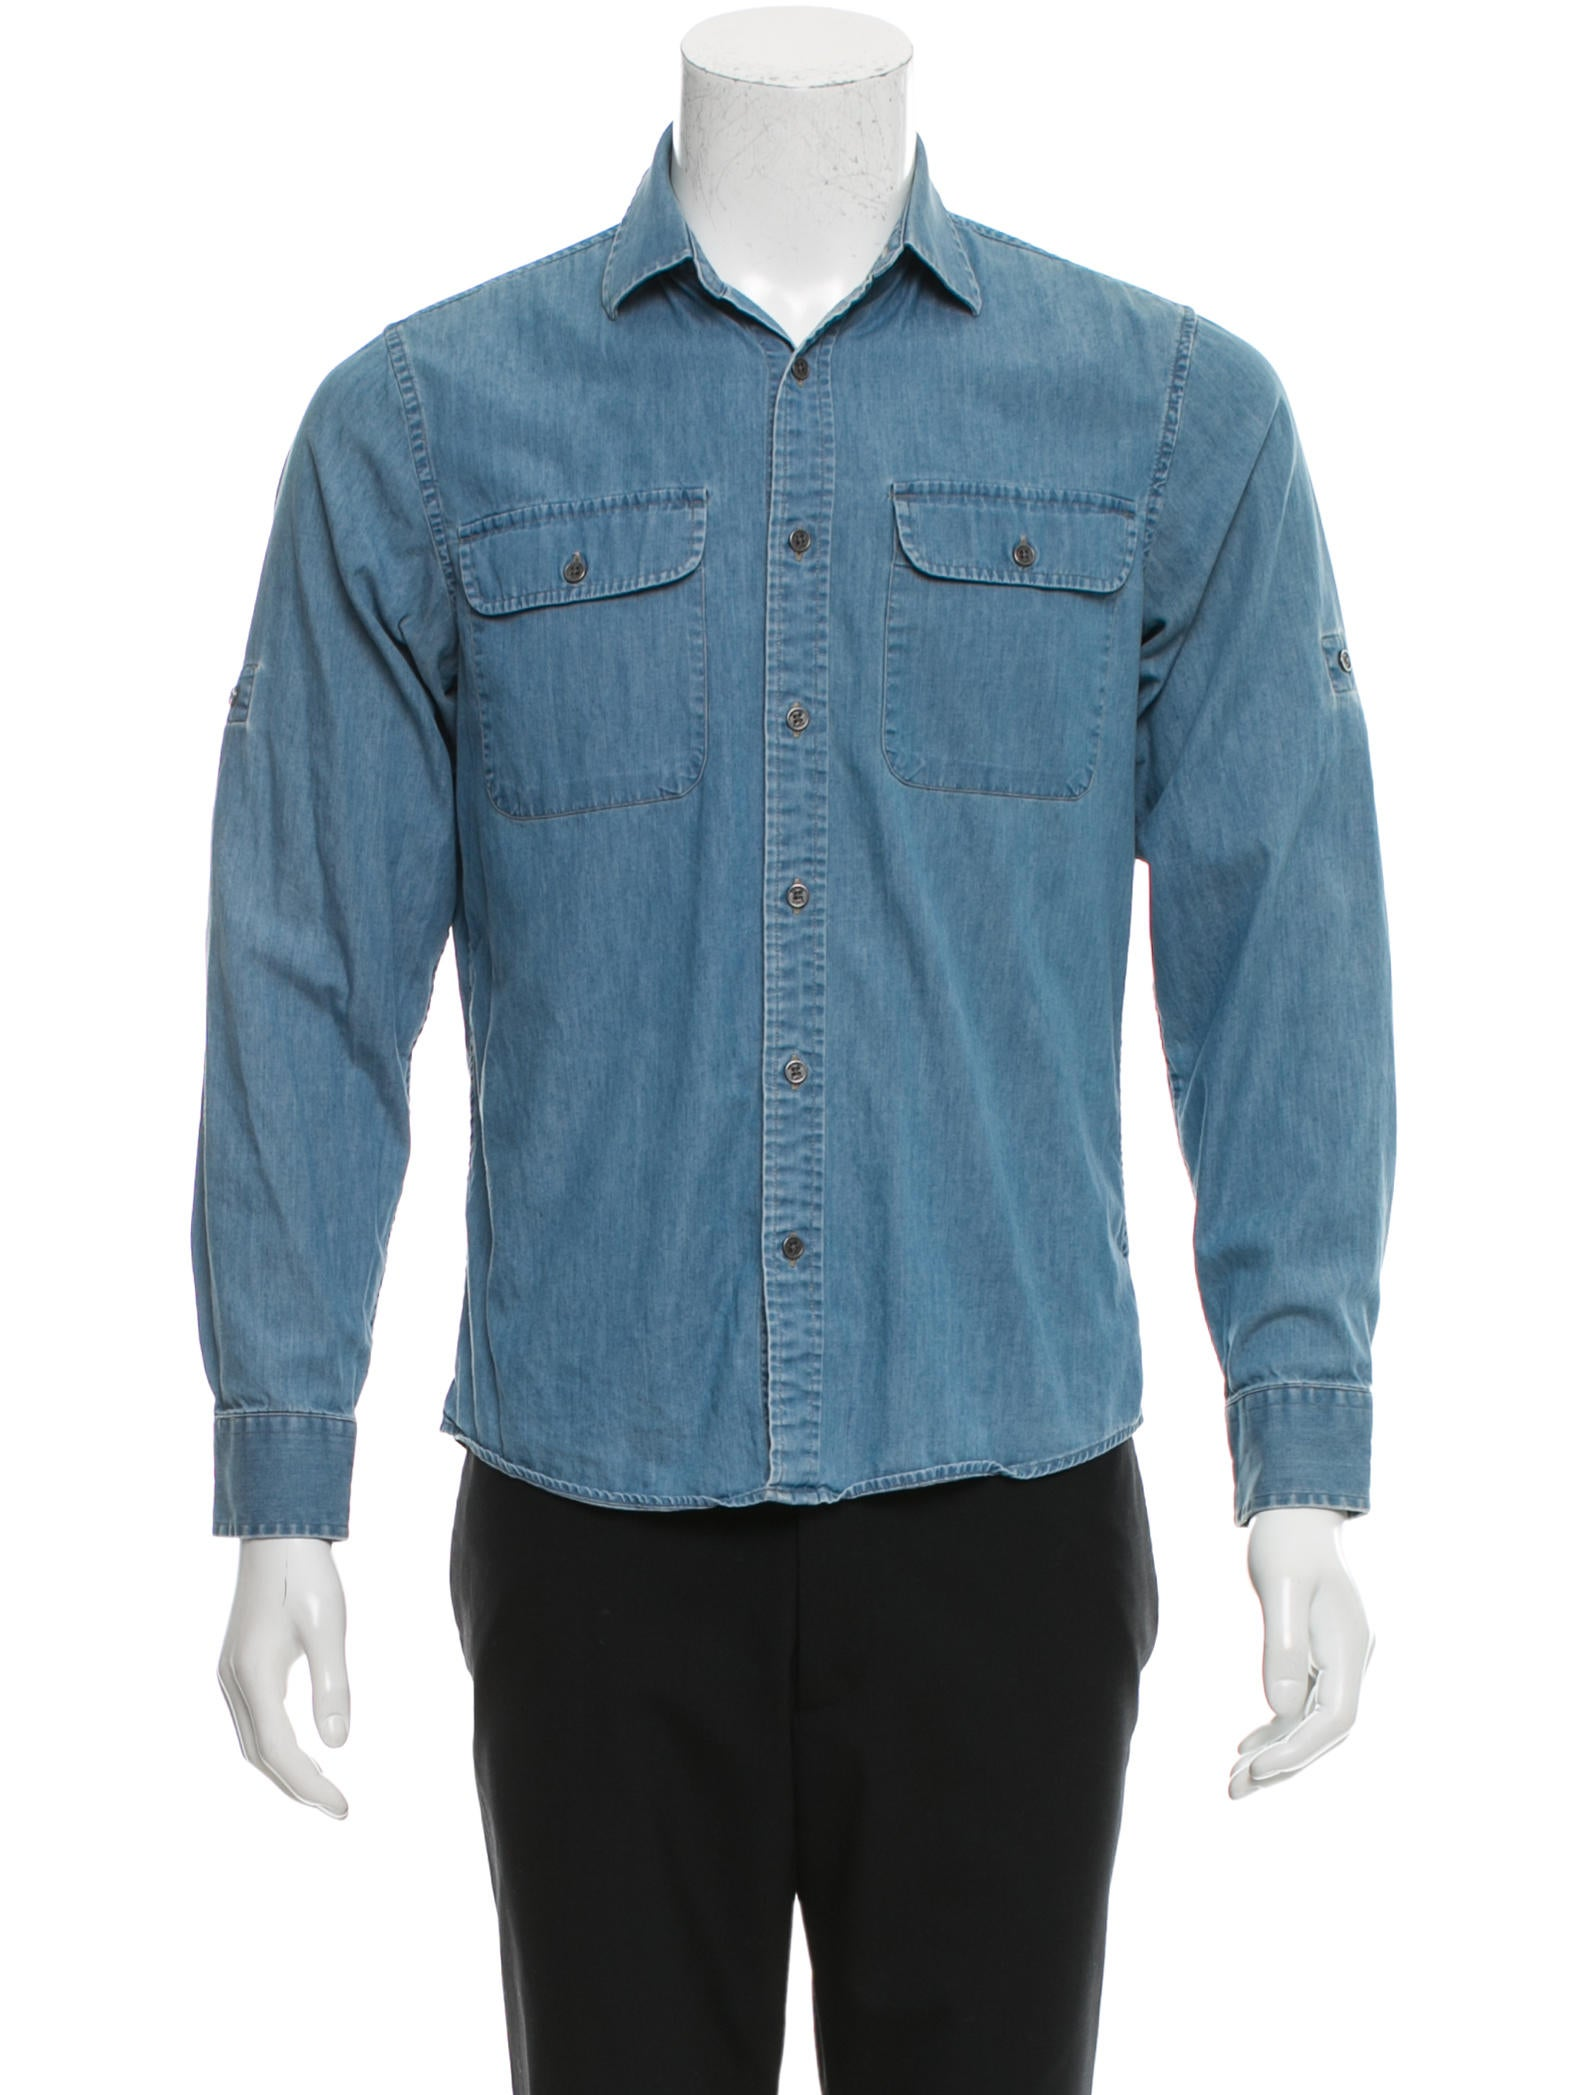 Michael kors tailored fit denim shirt clothing for Tailored fit dress shirts